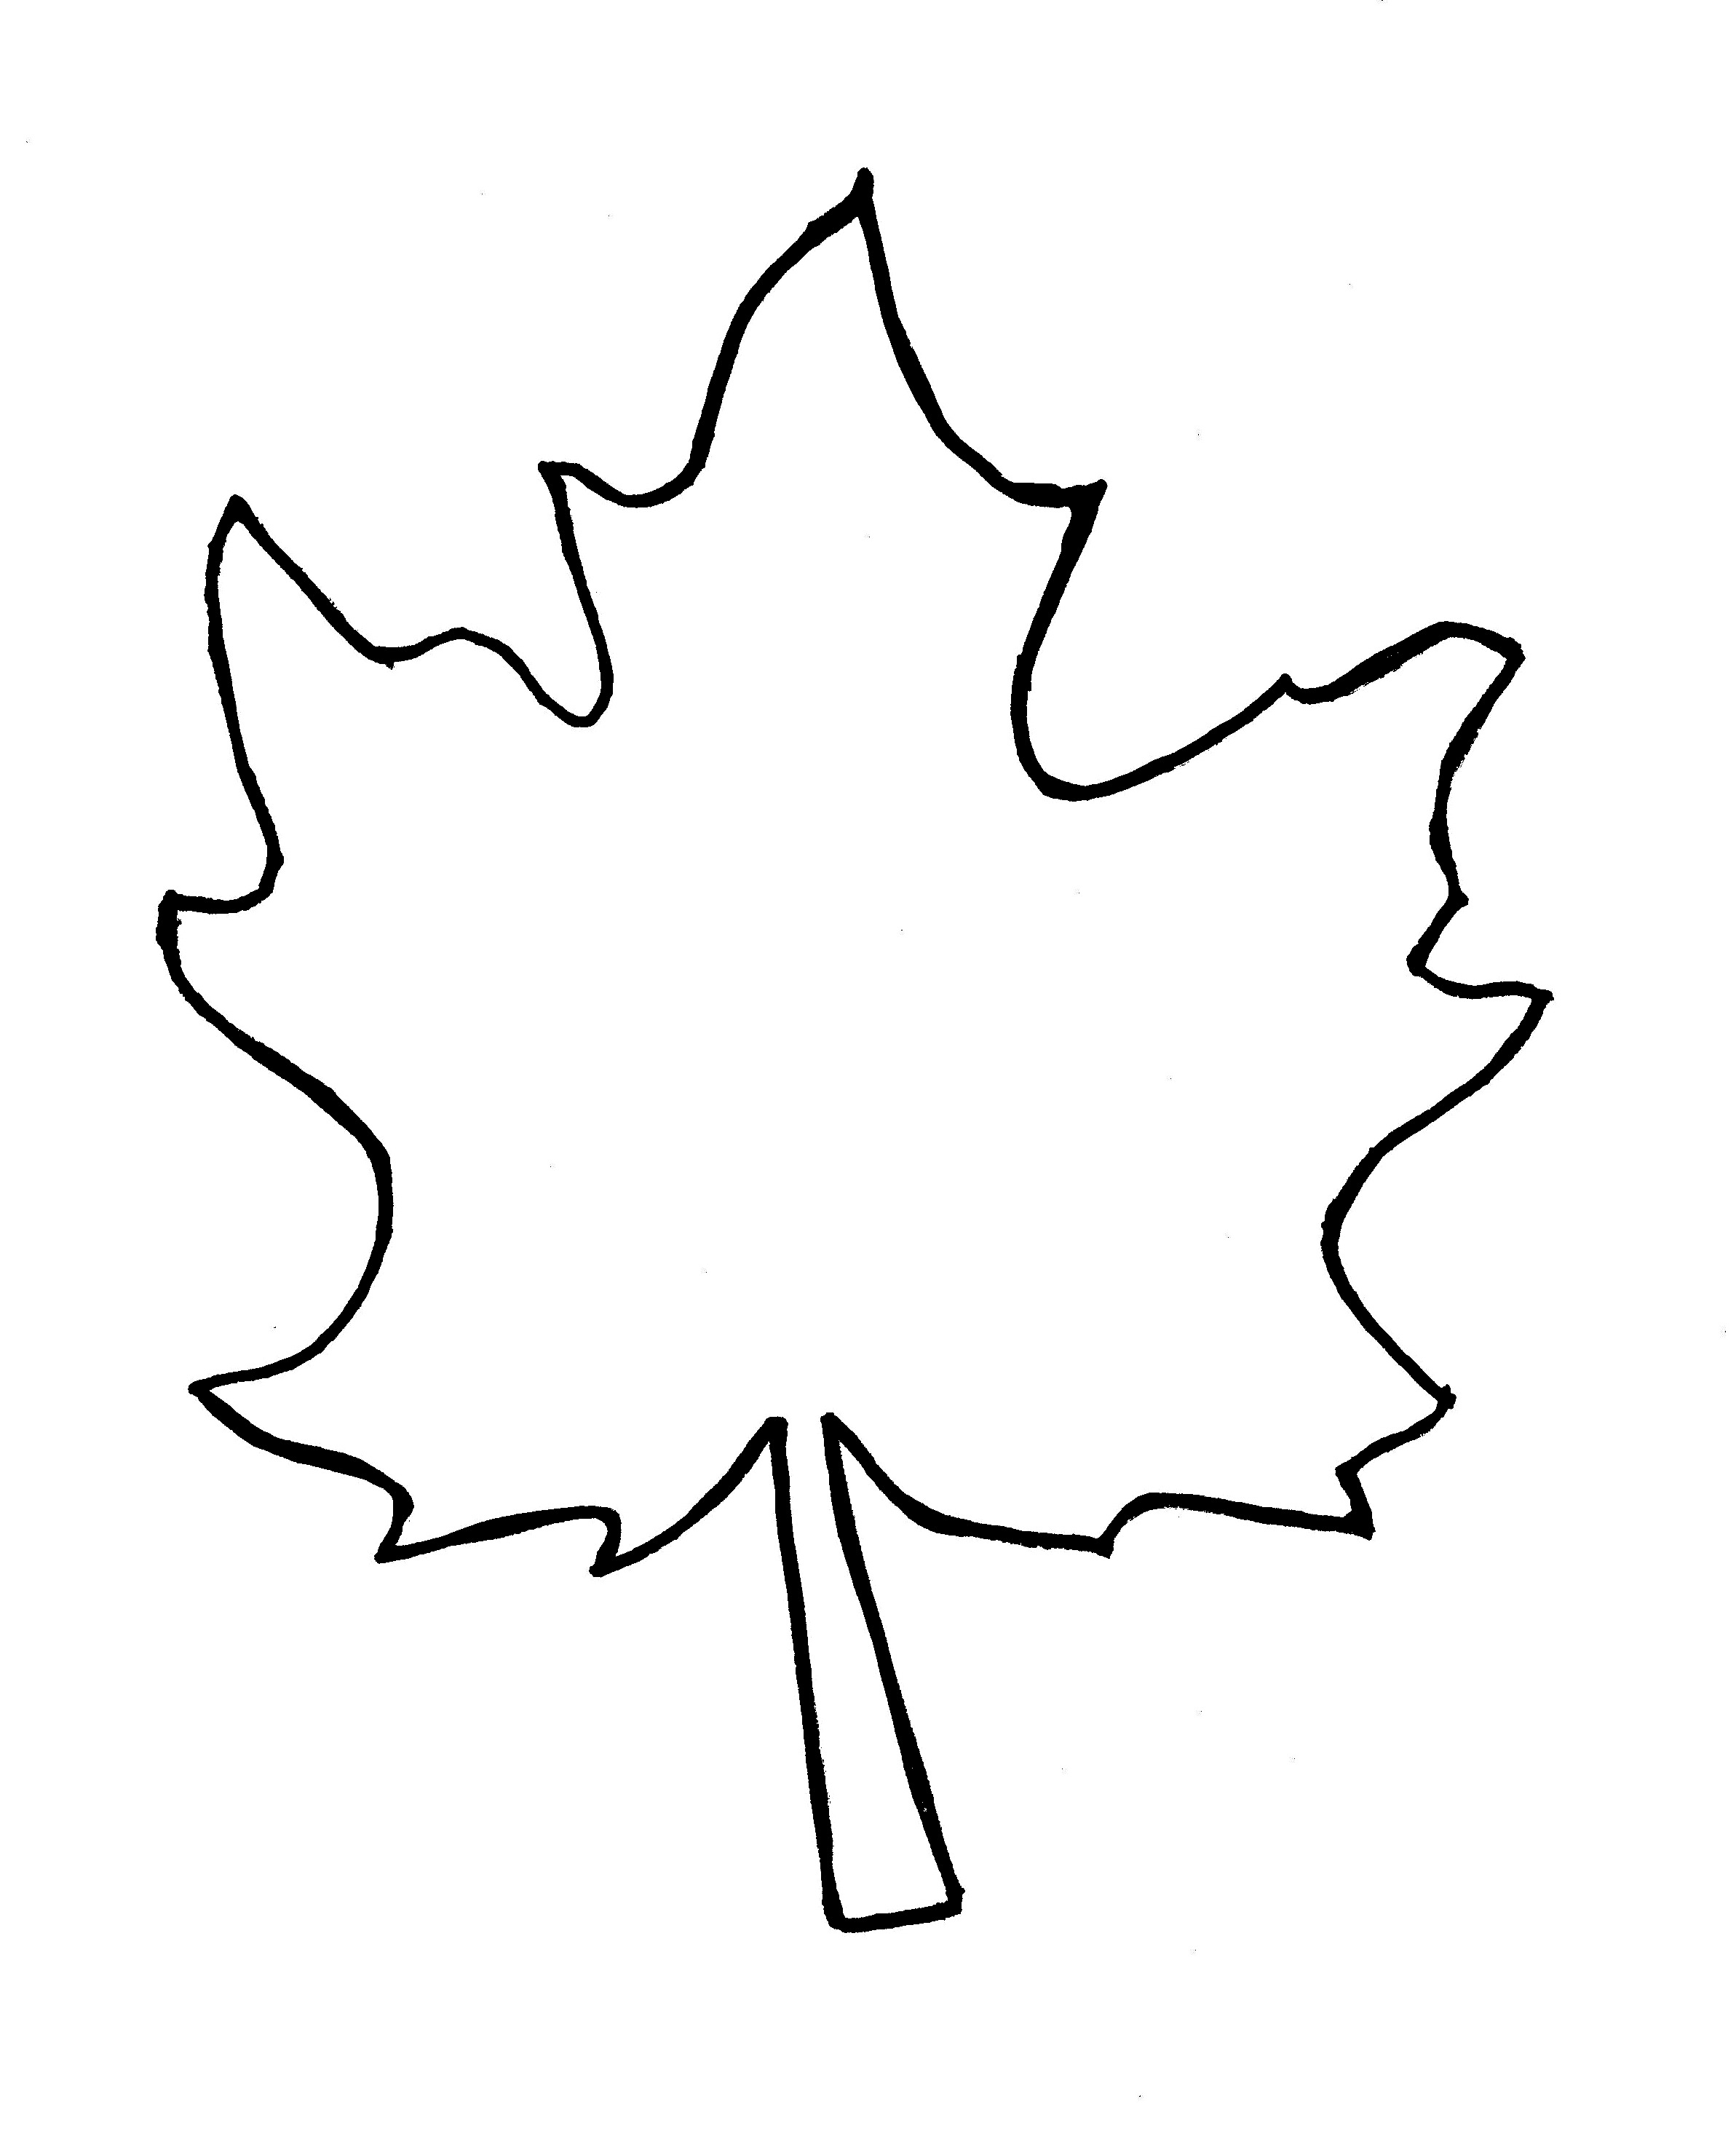 Free Leaf Cliparts Outline, Download Free Clip Art, Free.